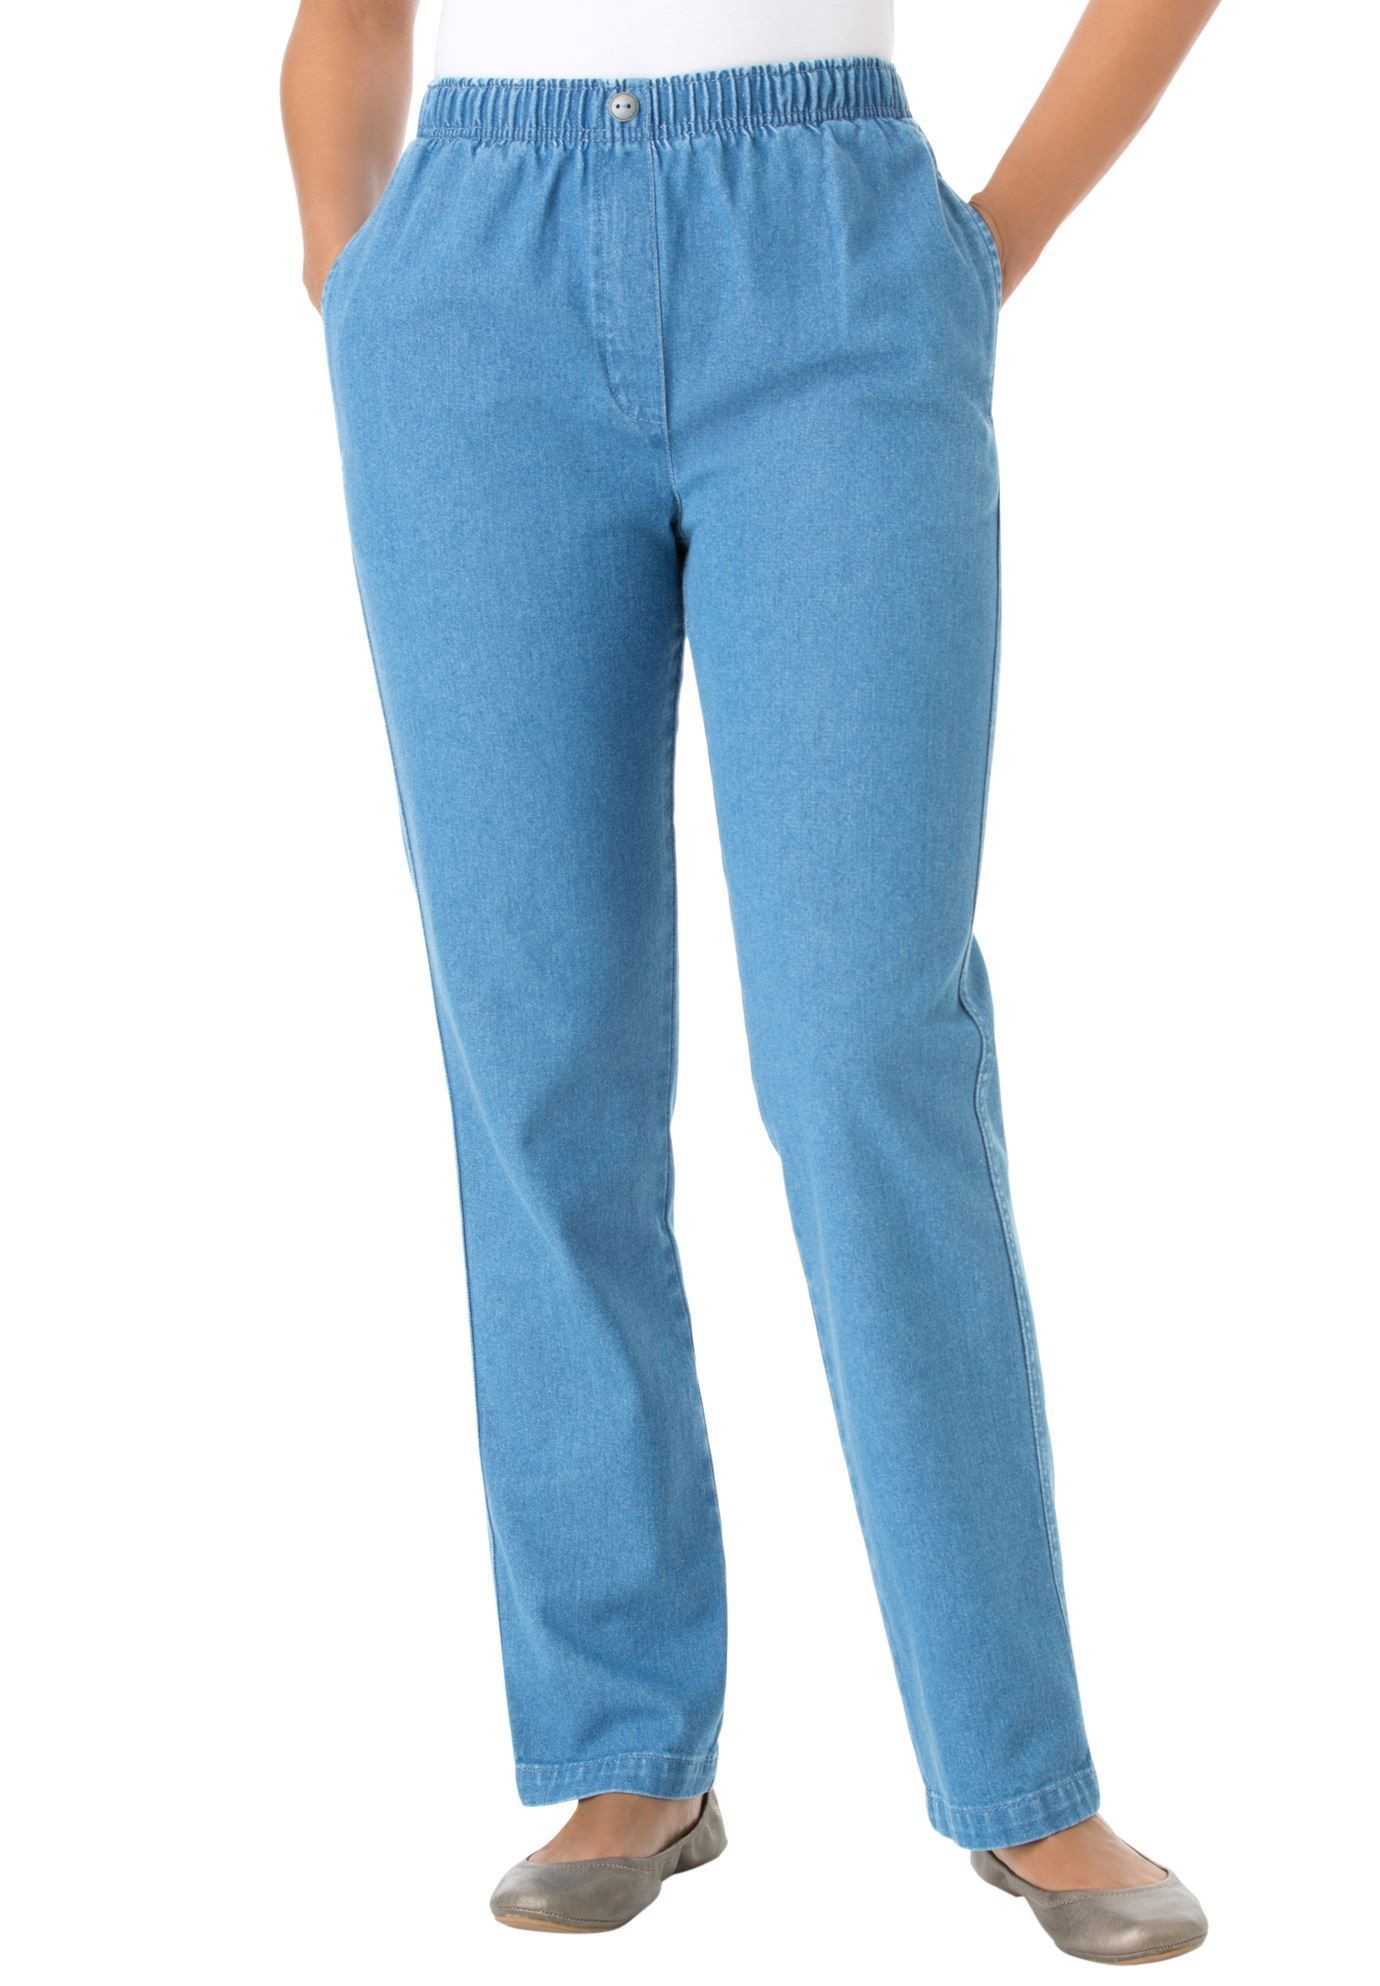 f5b84bc1f3281 100% Cotton Comfort Pull On Jean - Women s Plus Size Clothing